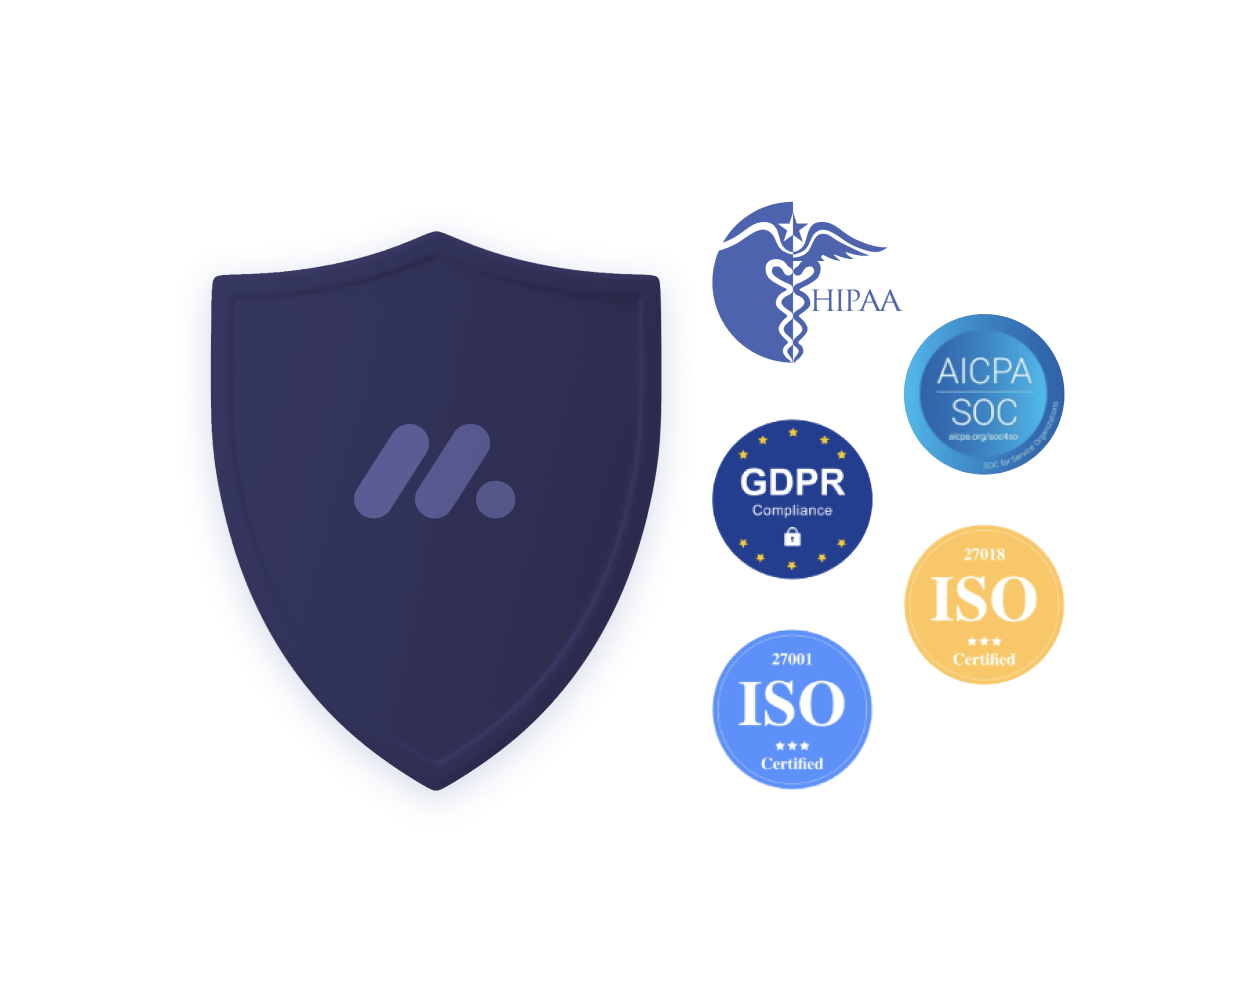 security logos such as GDPR and ISO